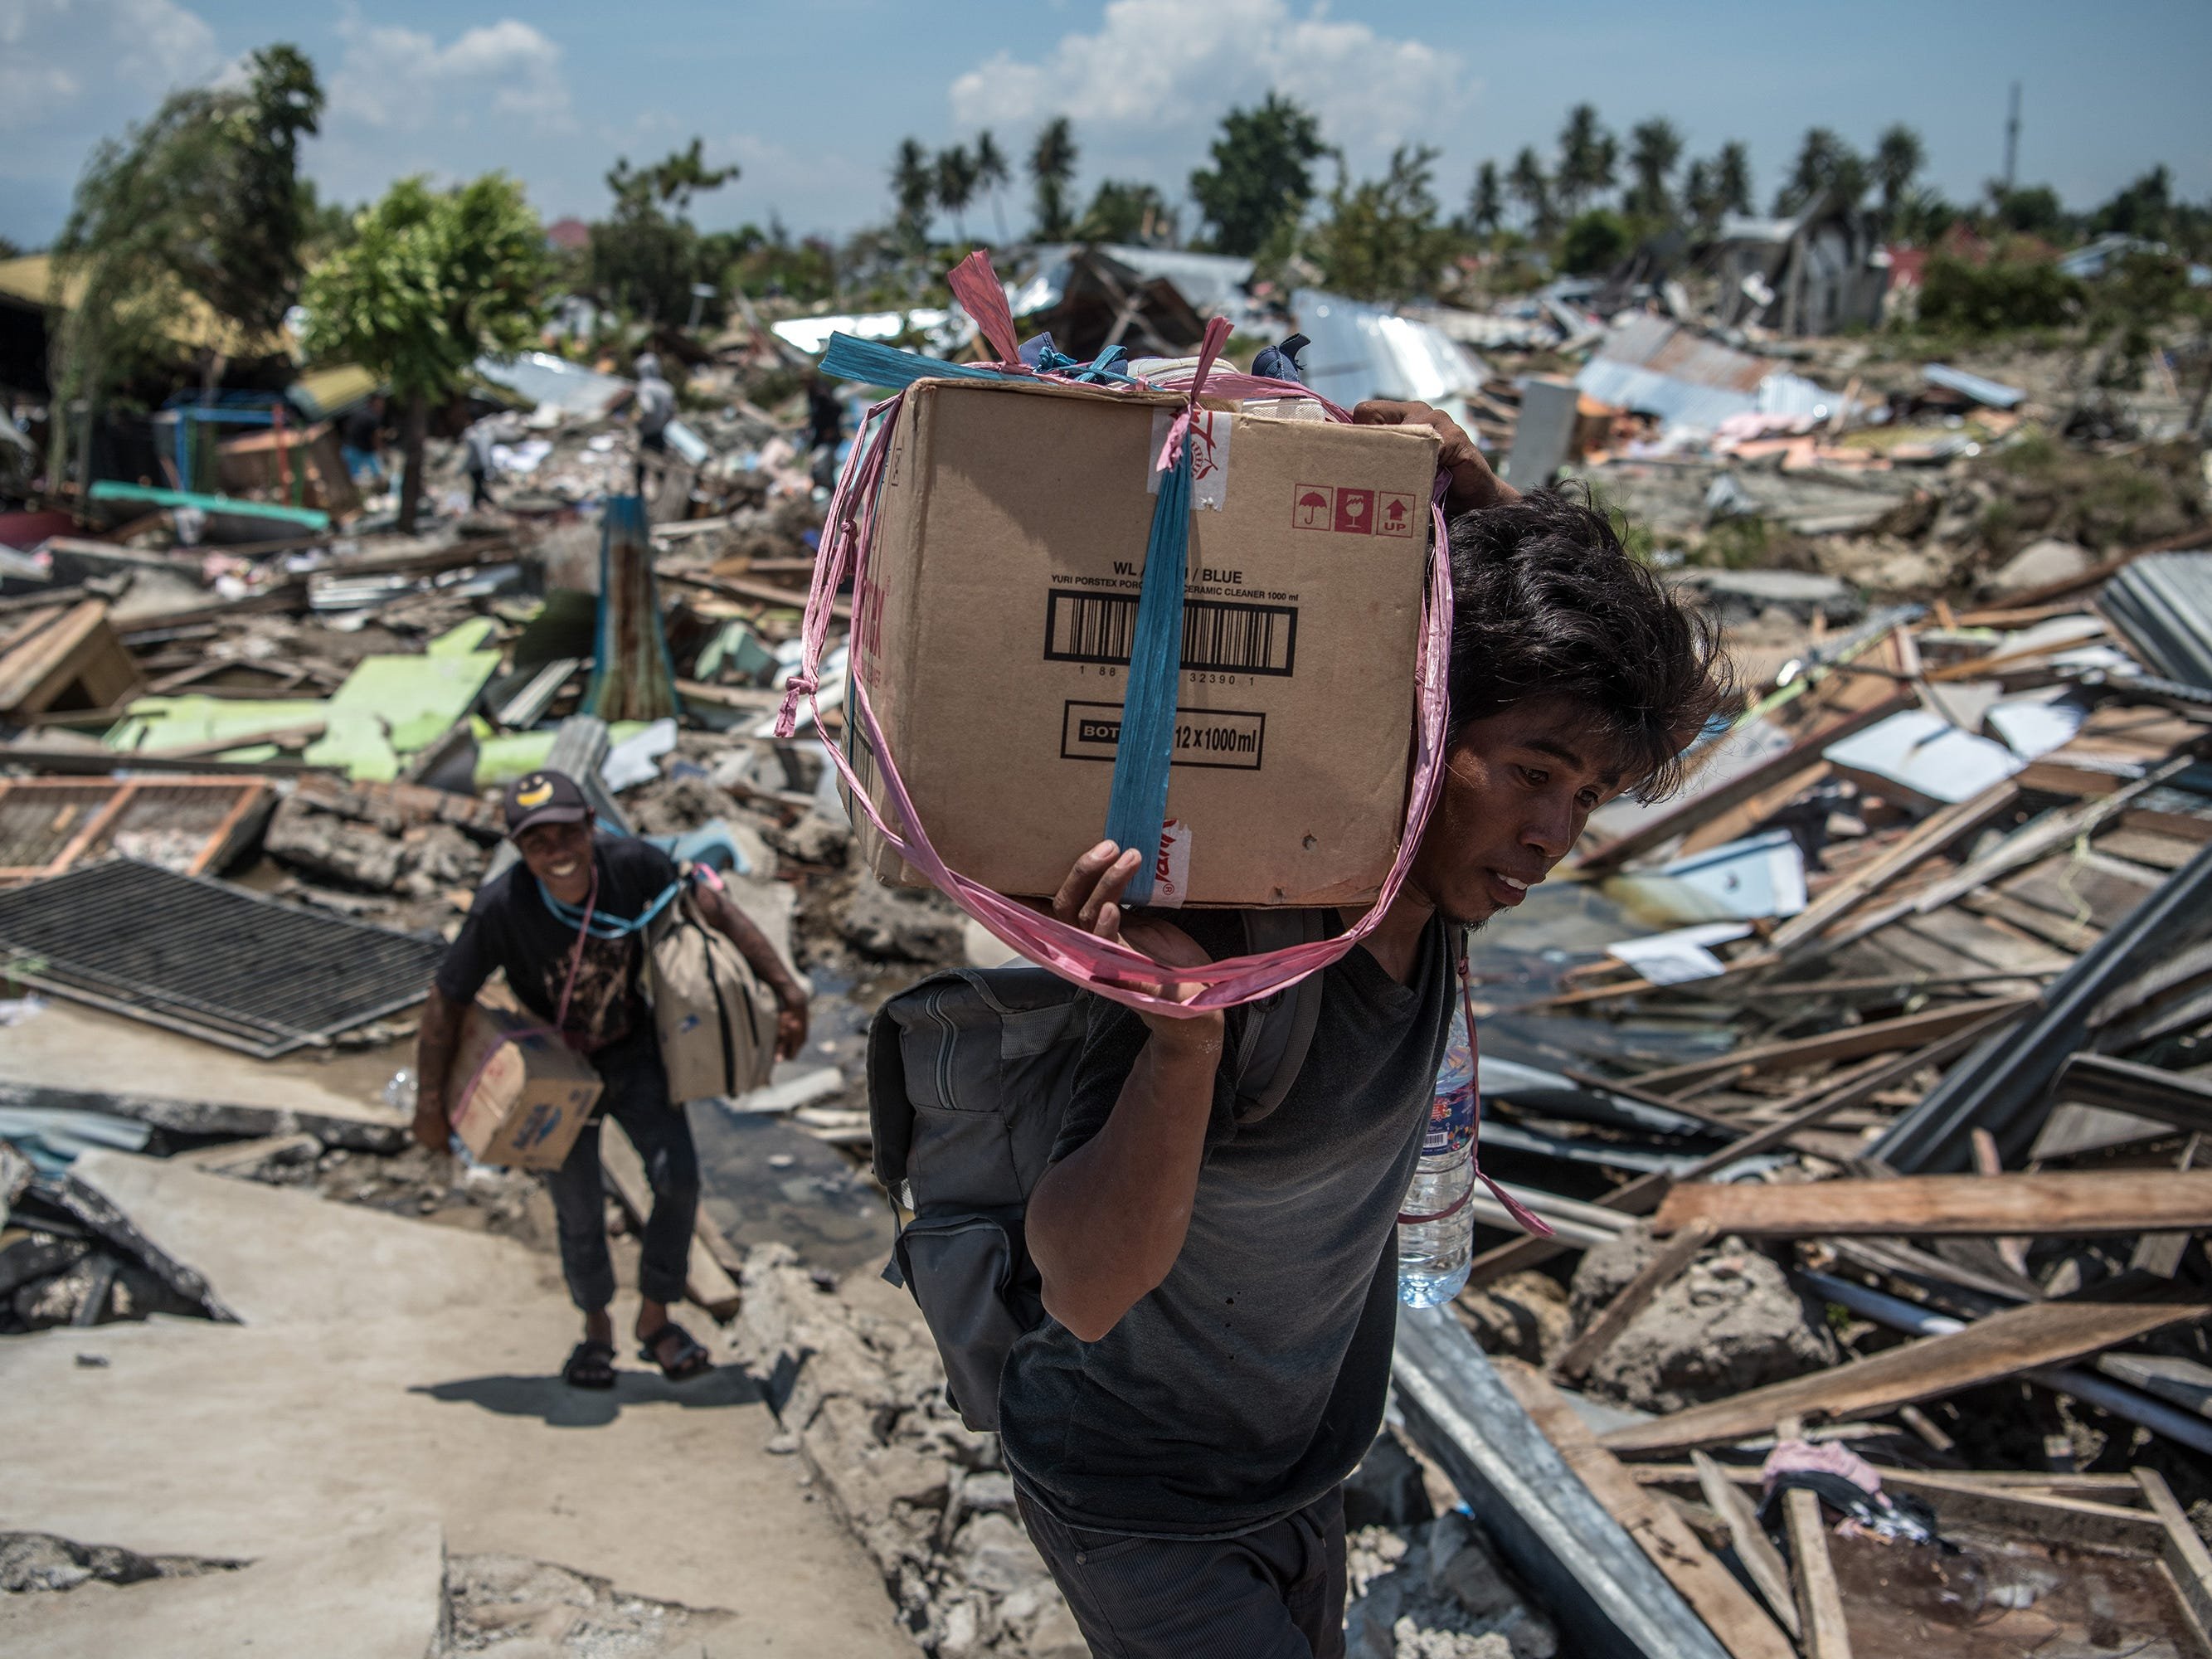 A man carries salvaged items through the rubble of buildings that were destroyed by an earthquake, on Oct. 02, 2018, in Palu, Indonesia.